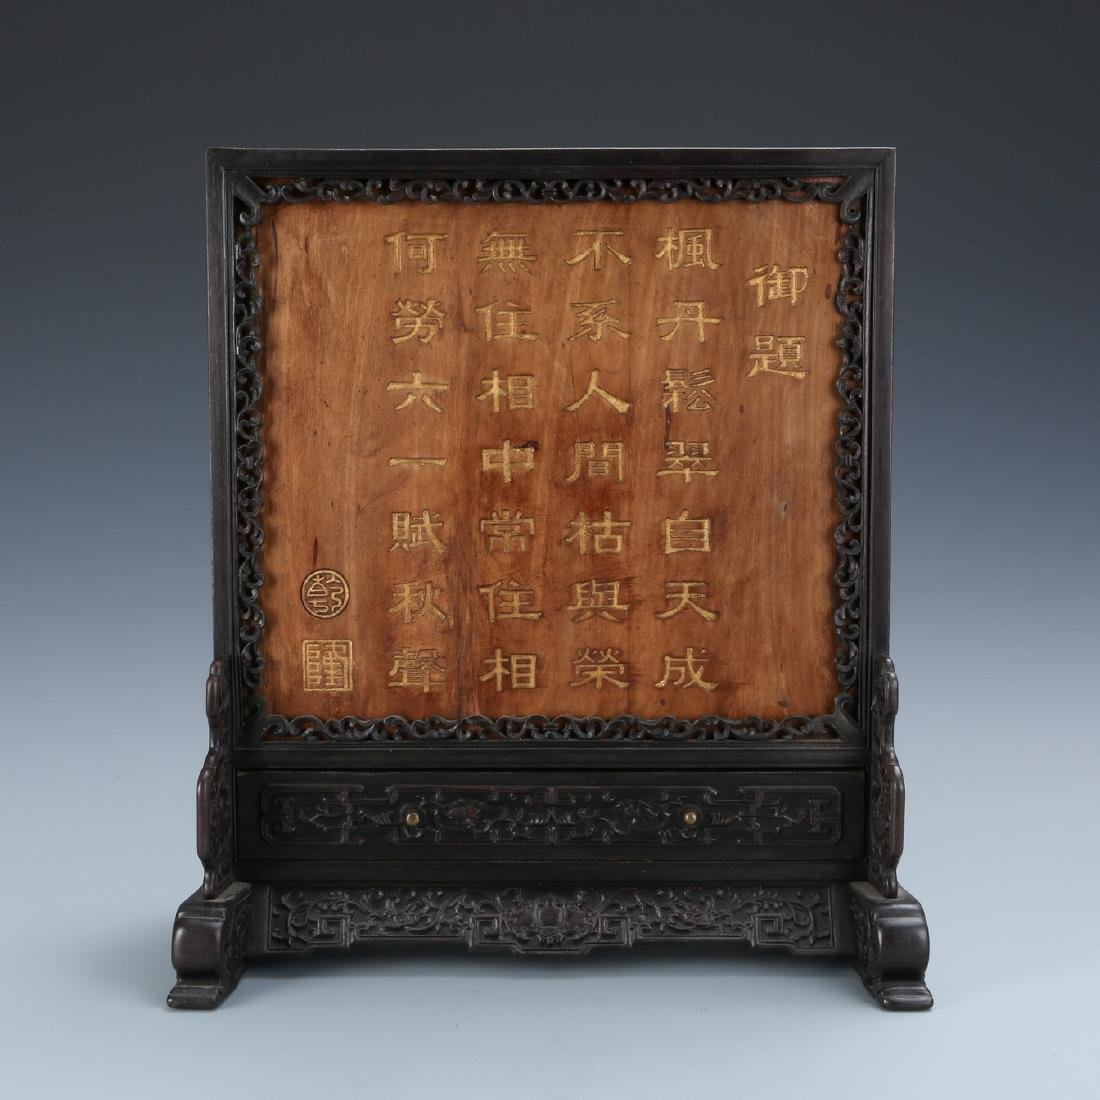 Inscribed Zitan Boxwood Table Screen w/ Imperial Poem - 4